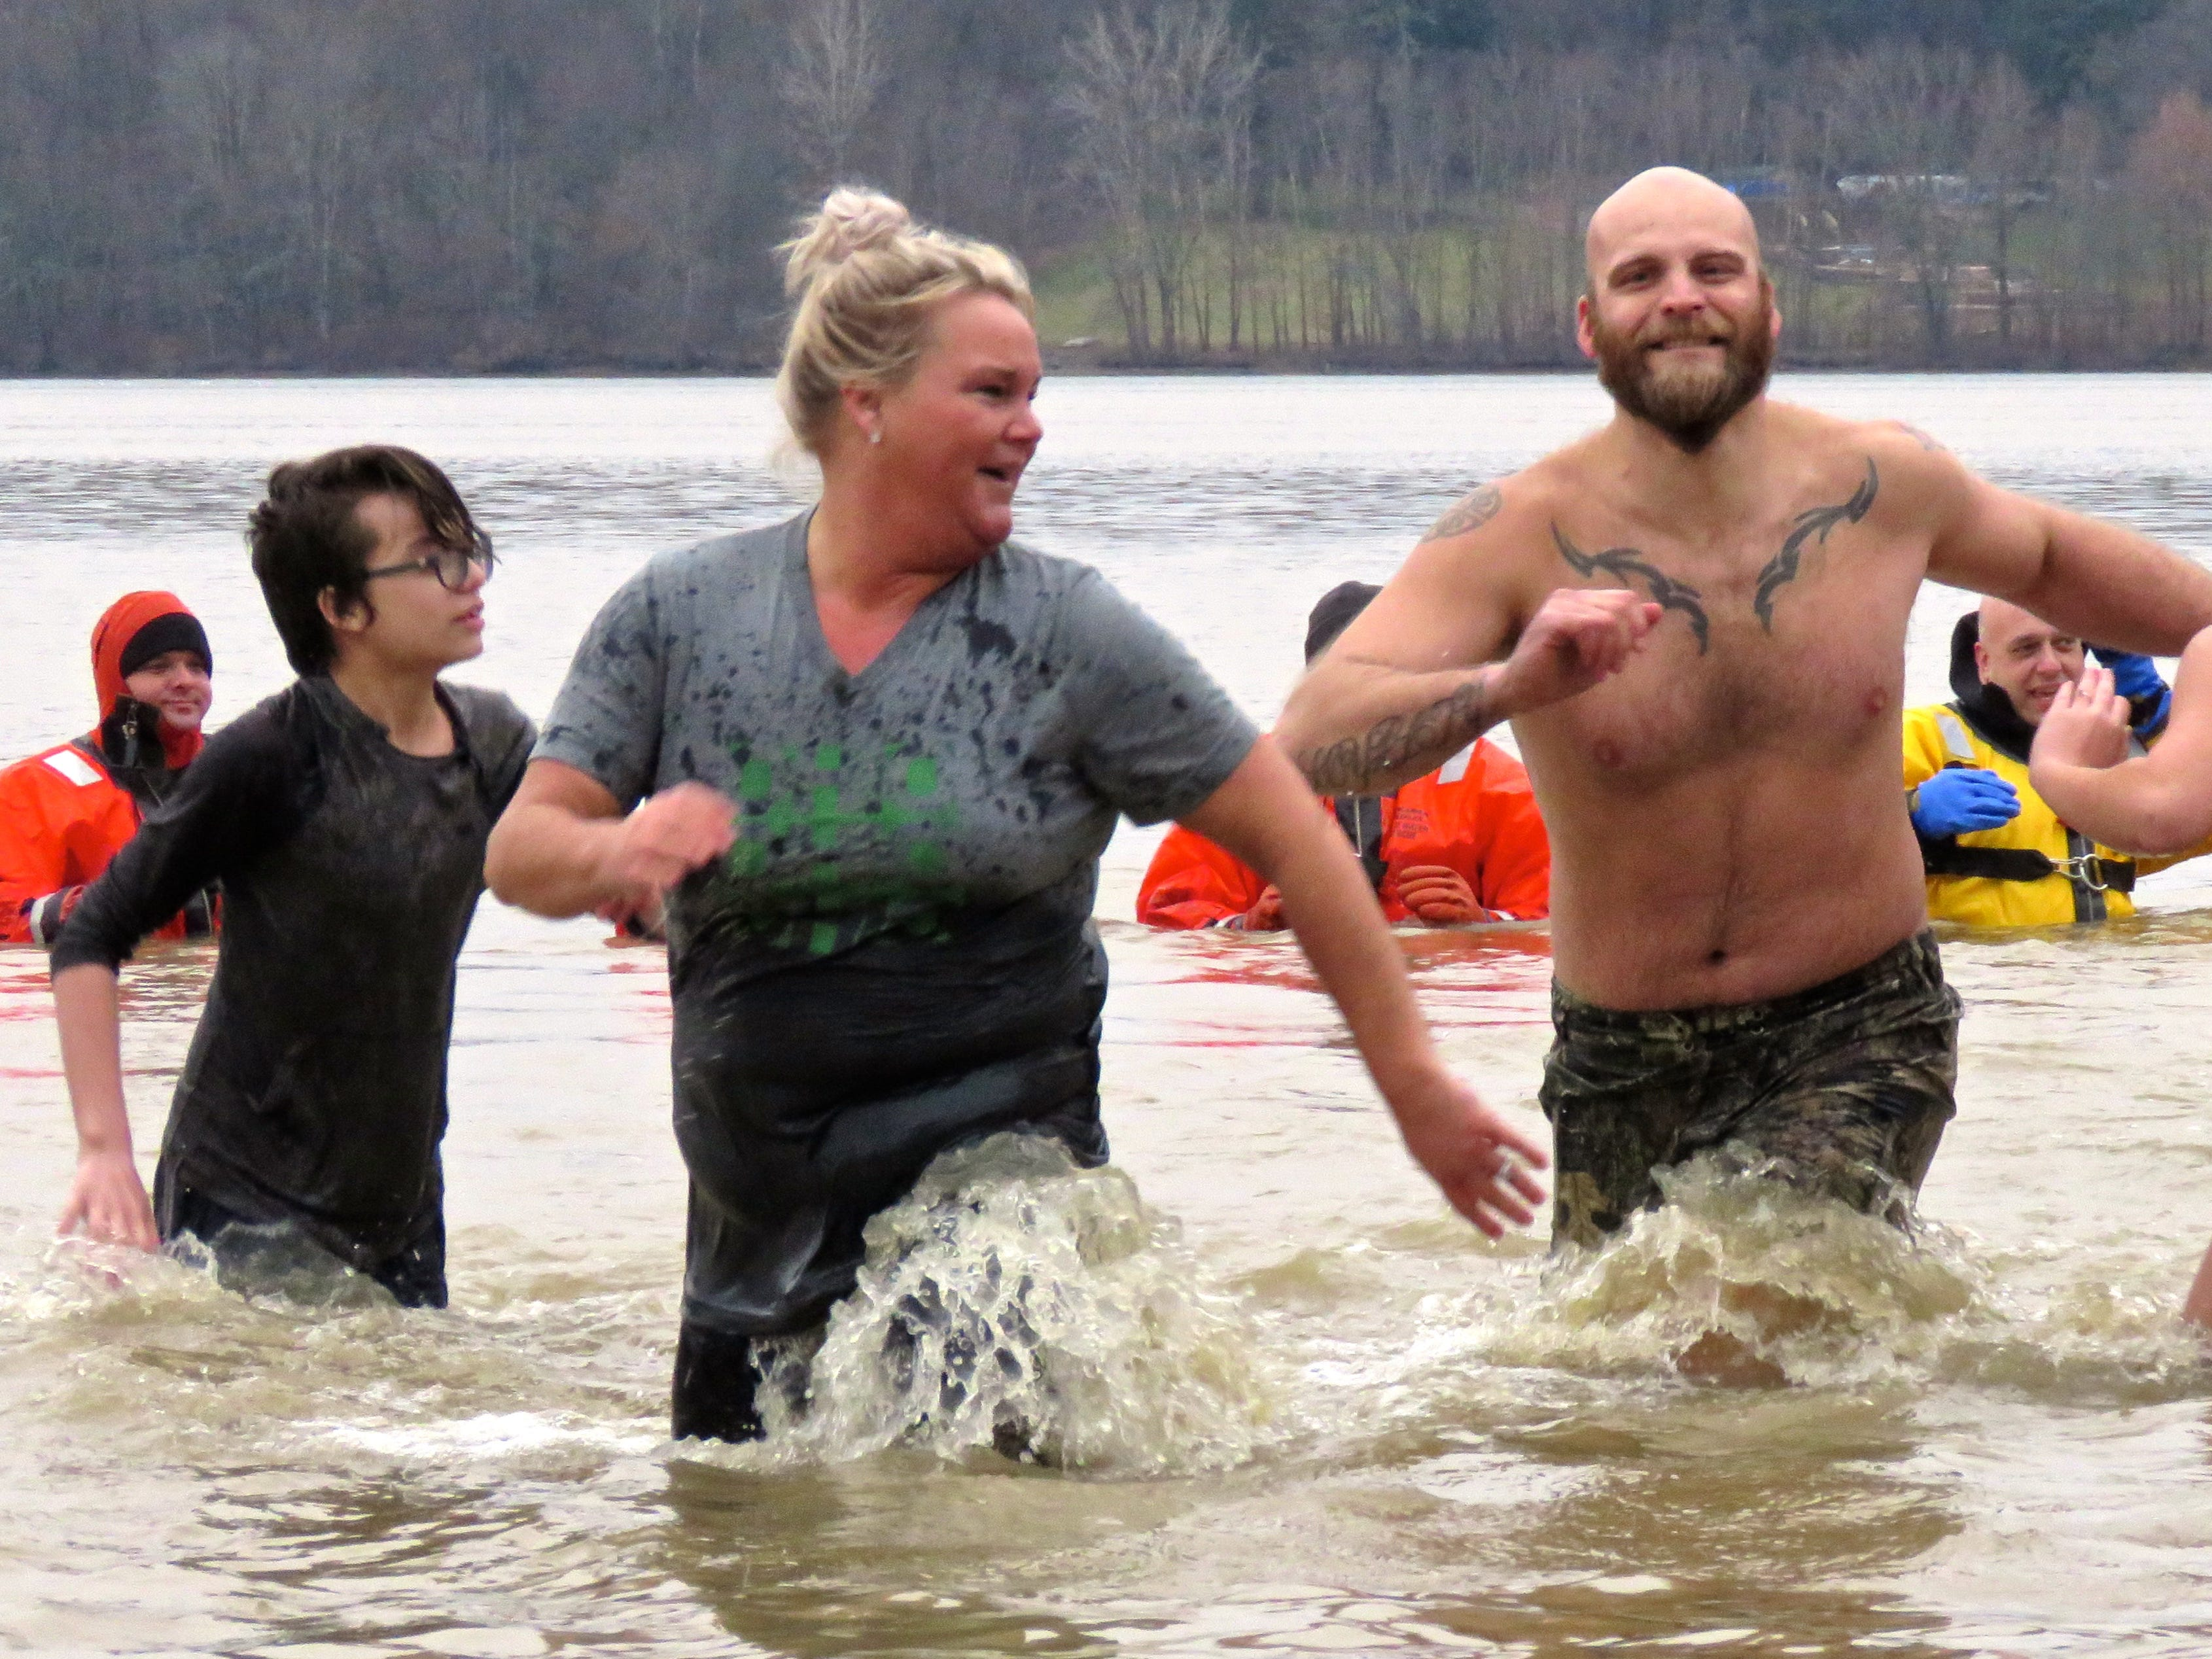 The 13th annual Polar Bear dip took place Tuesday at Charles Mill Lake.